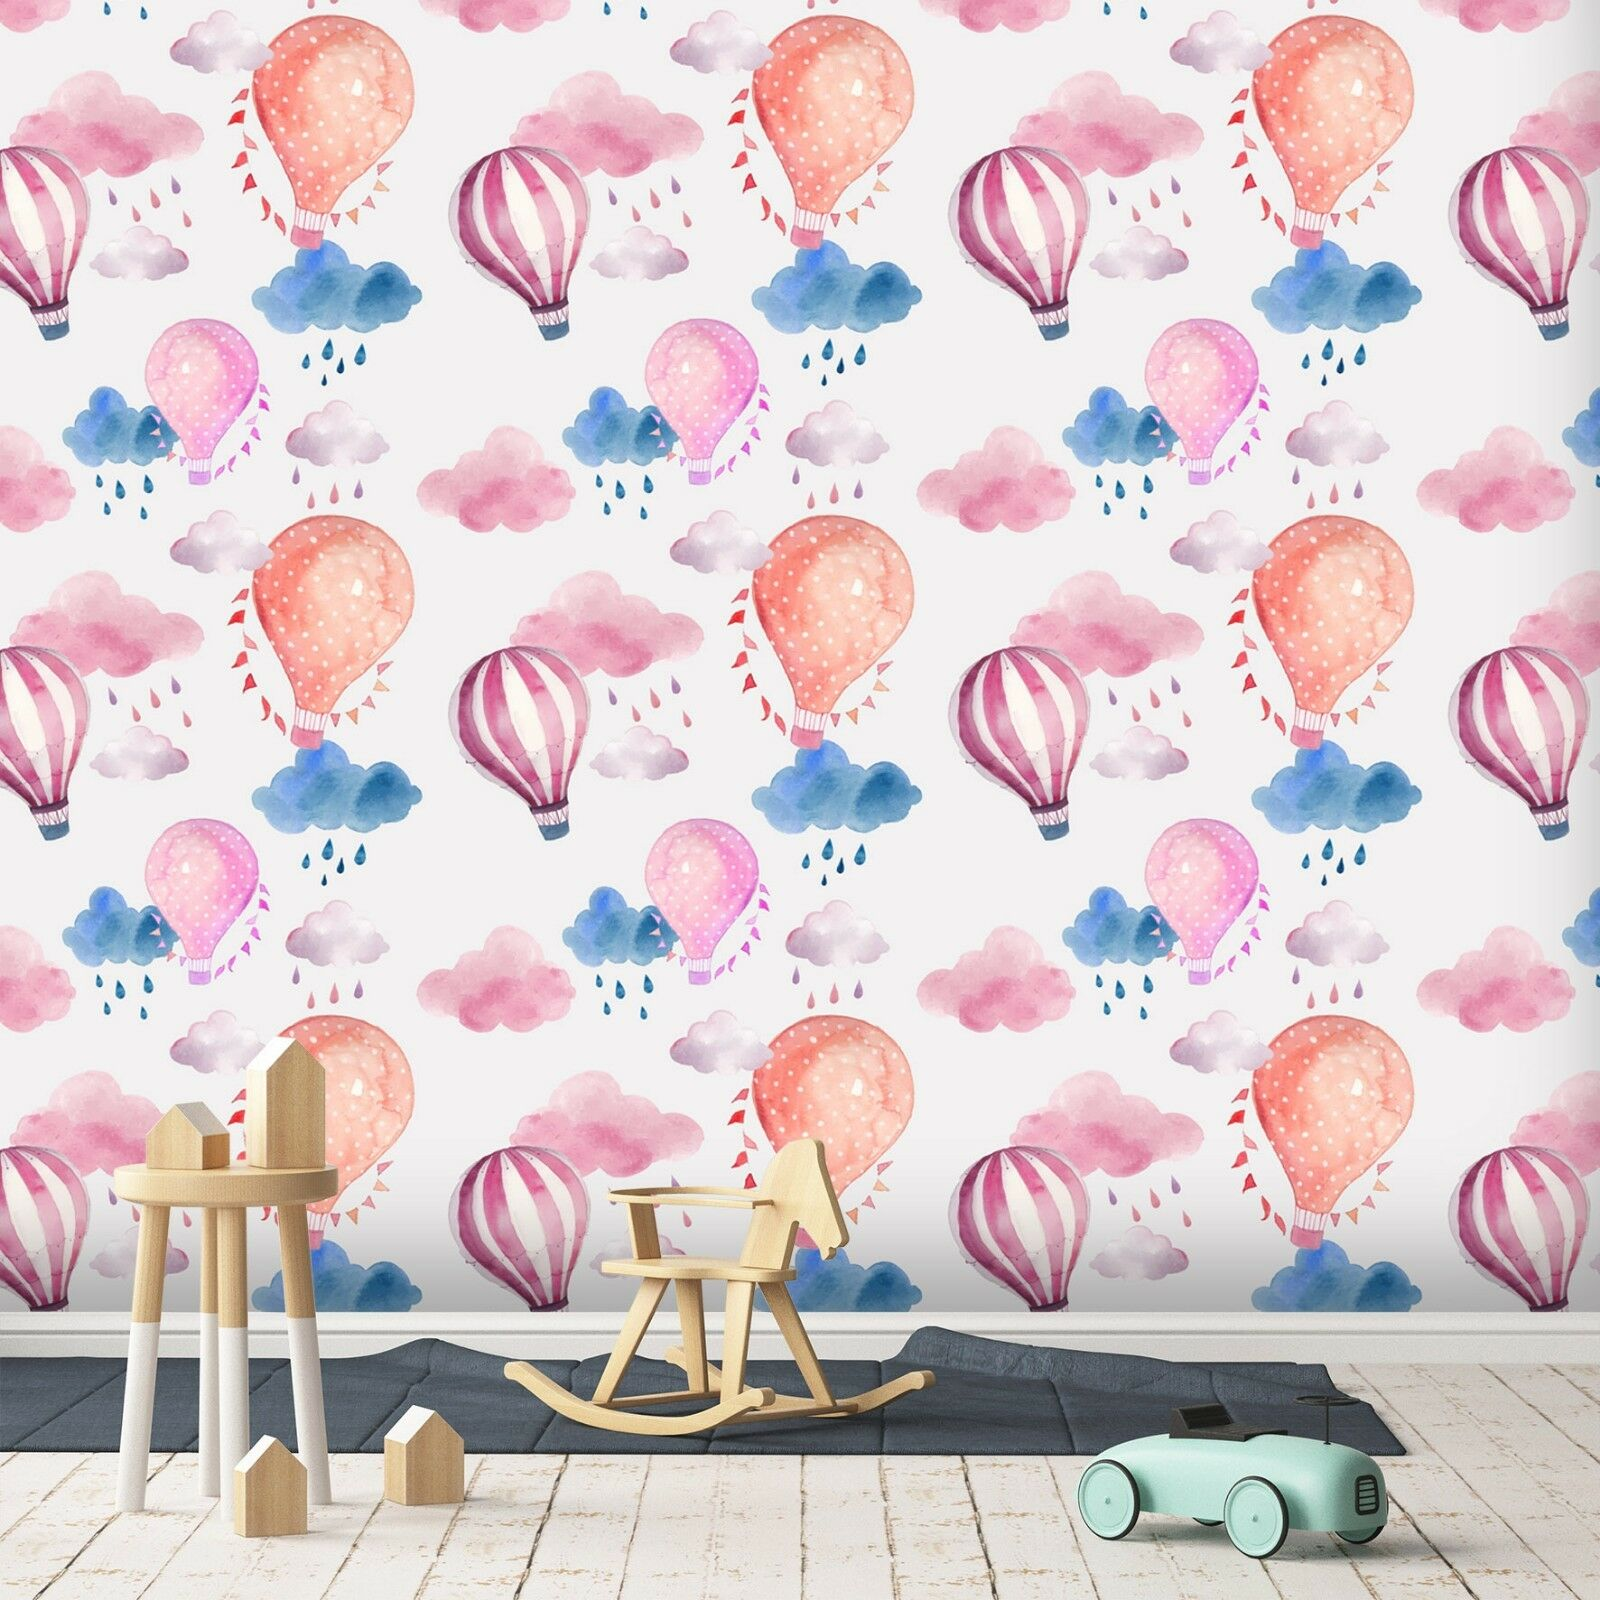 3D Hot Air Balloon 877 Wallpaper Mural Paper Wall Print Indoor Murals CA Summer